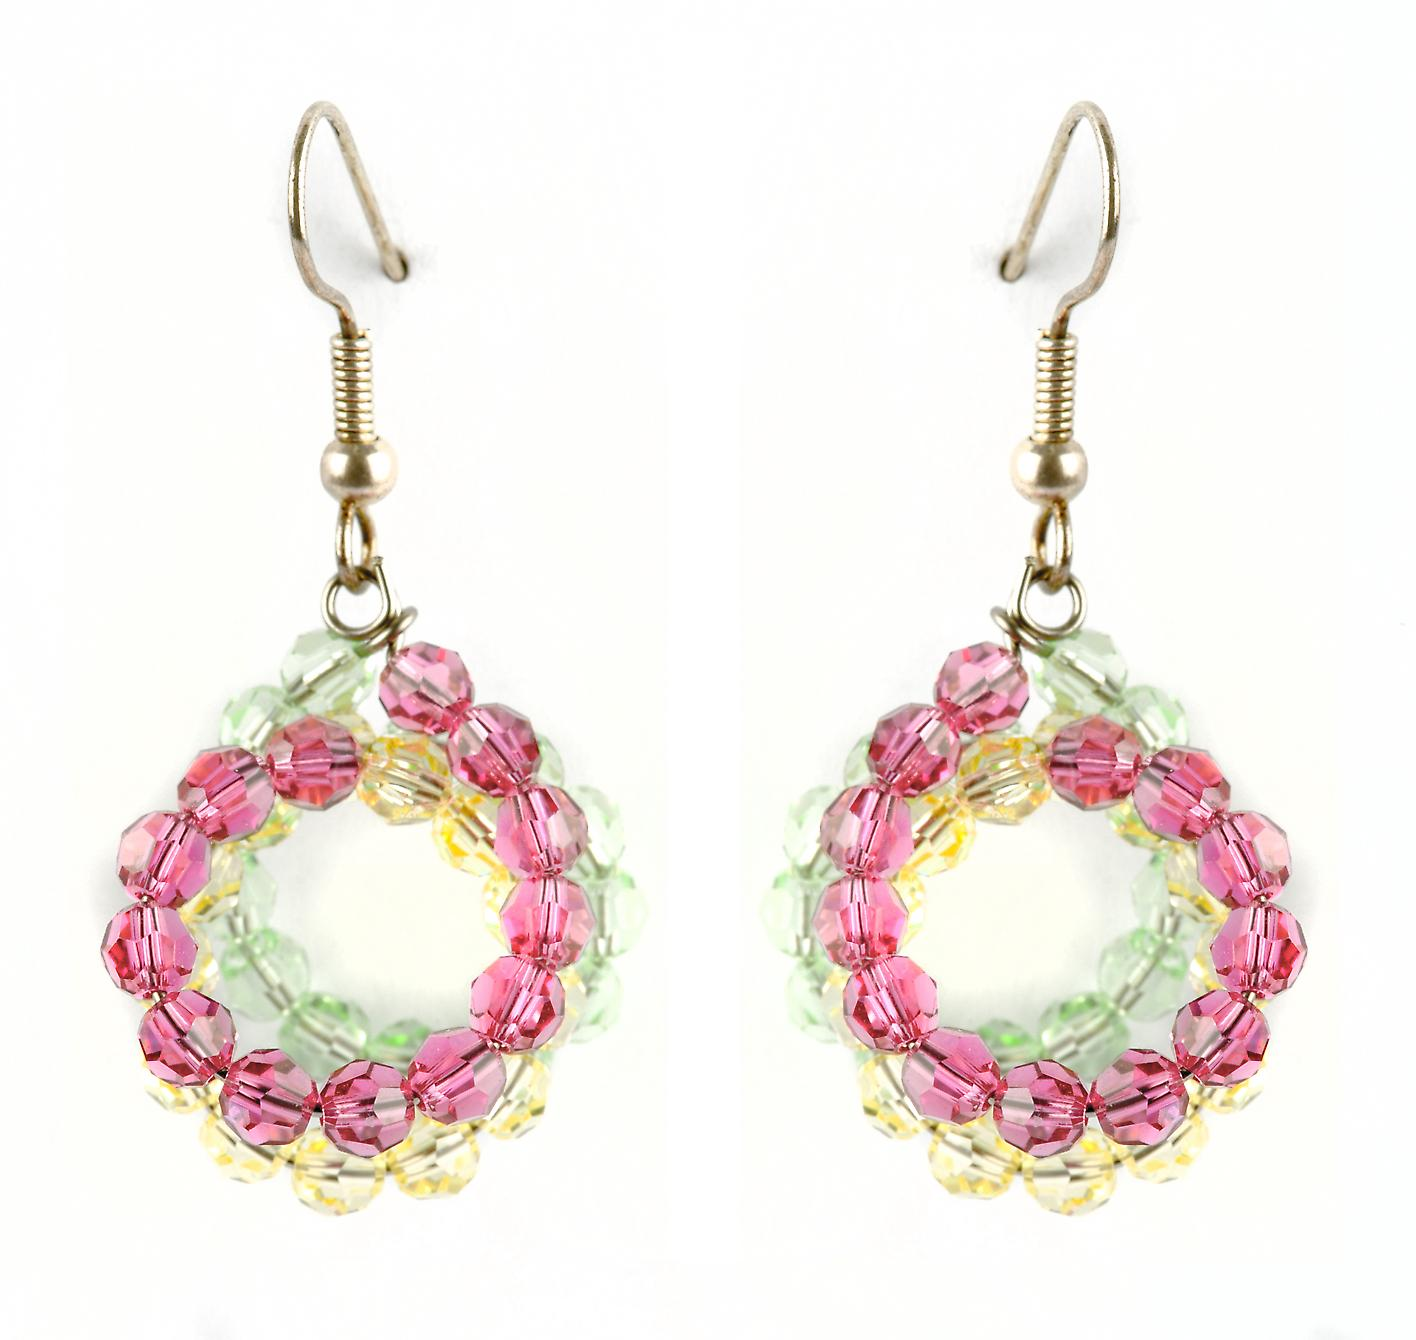 Waooh - Fashion Jewellery - WJ0741 - On Earrings with Swarovski Pink White & Green